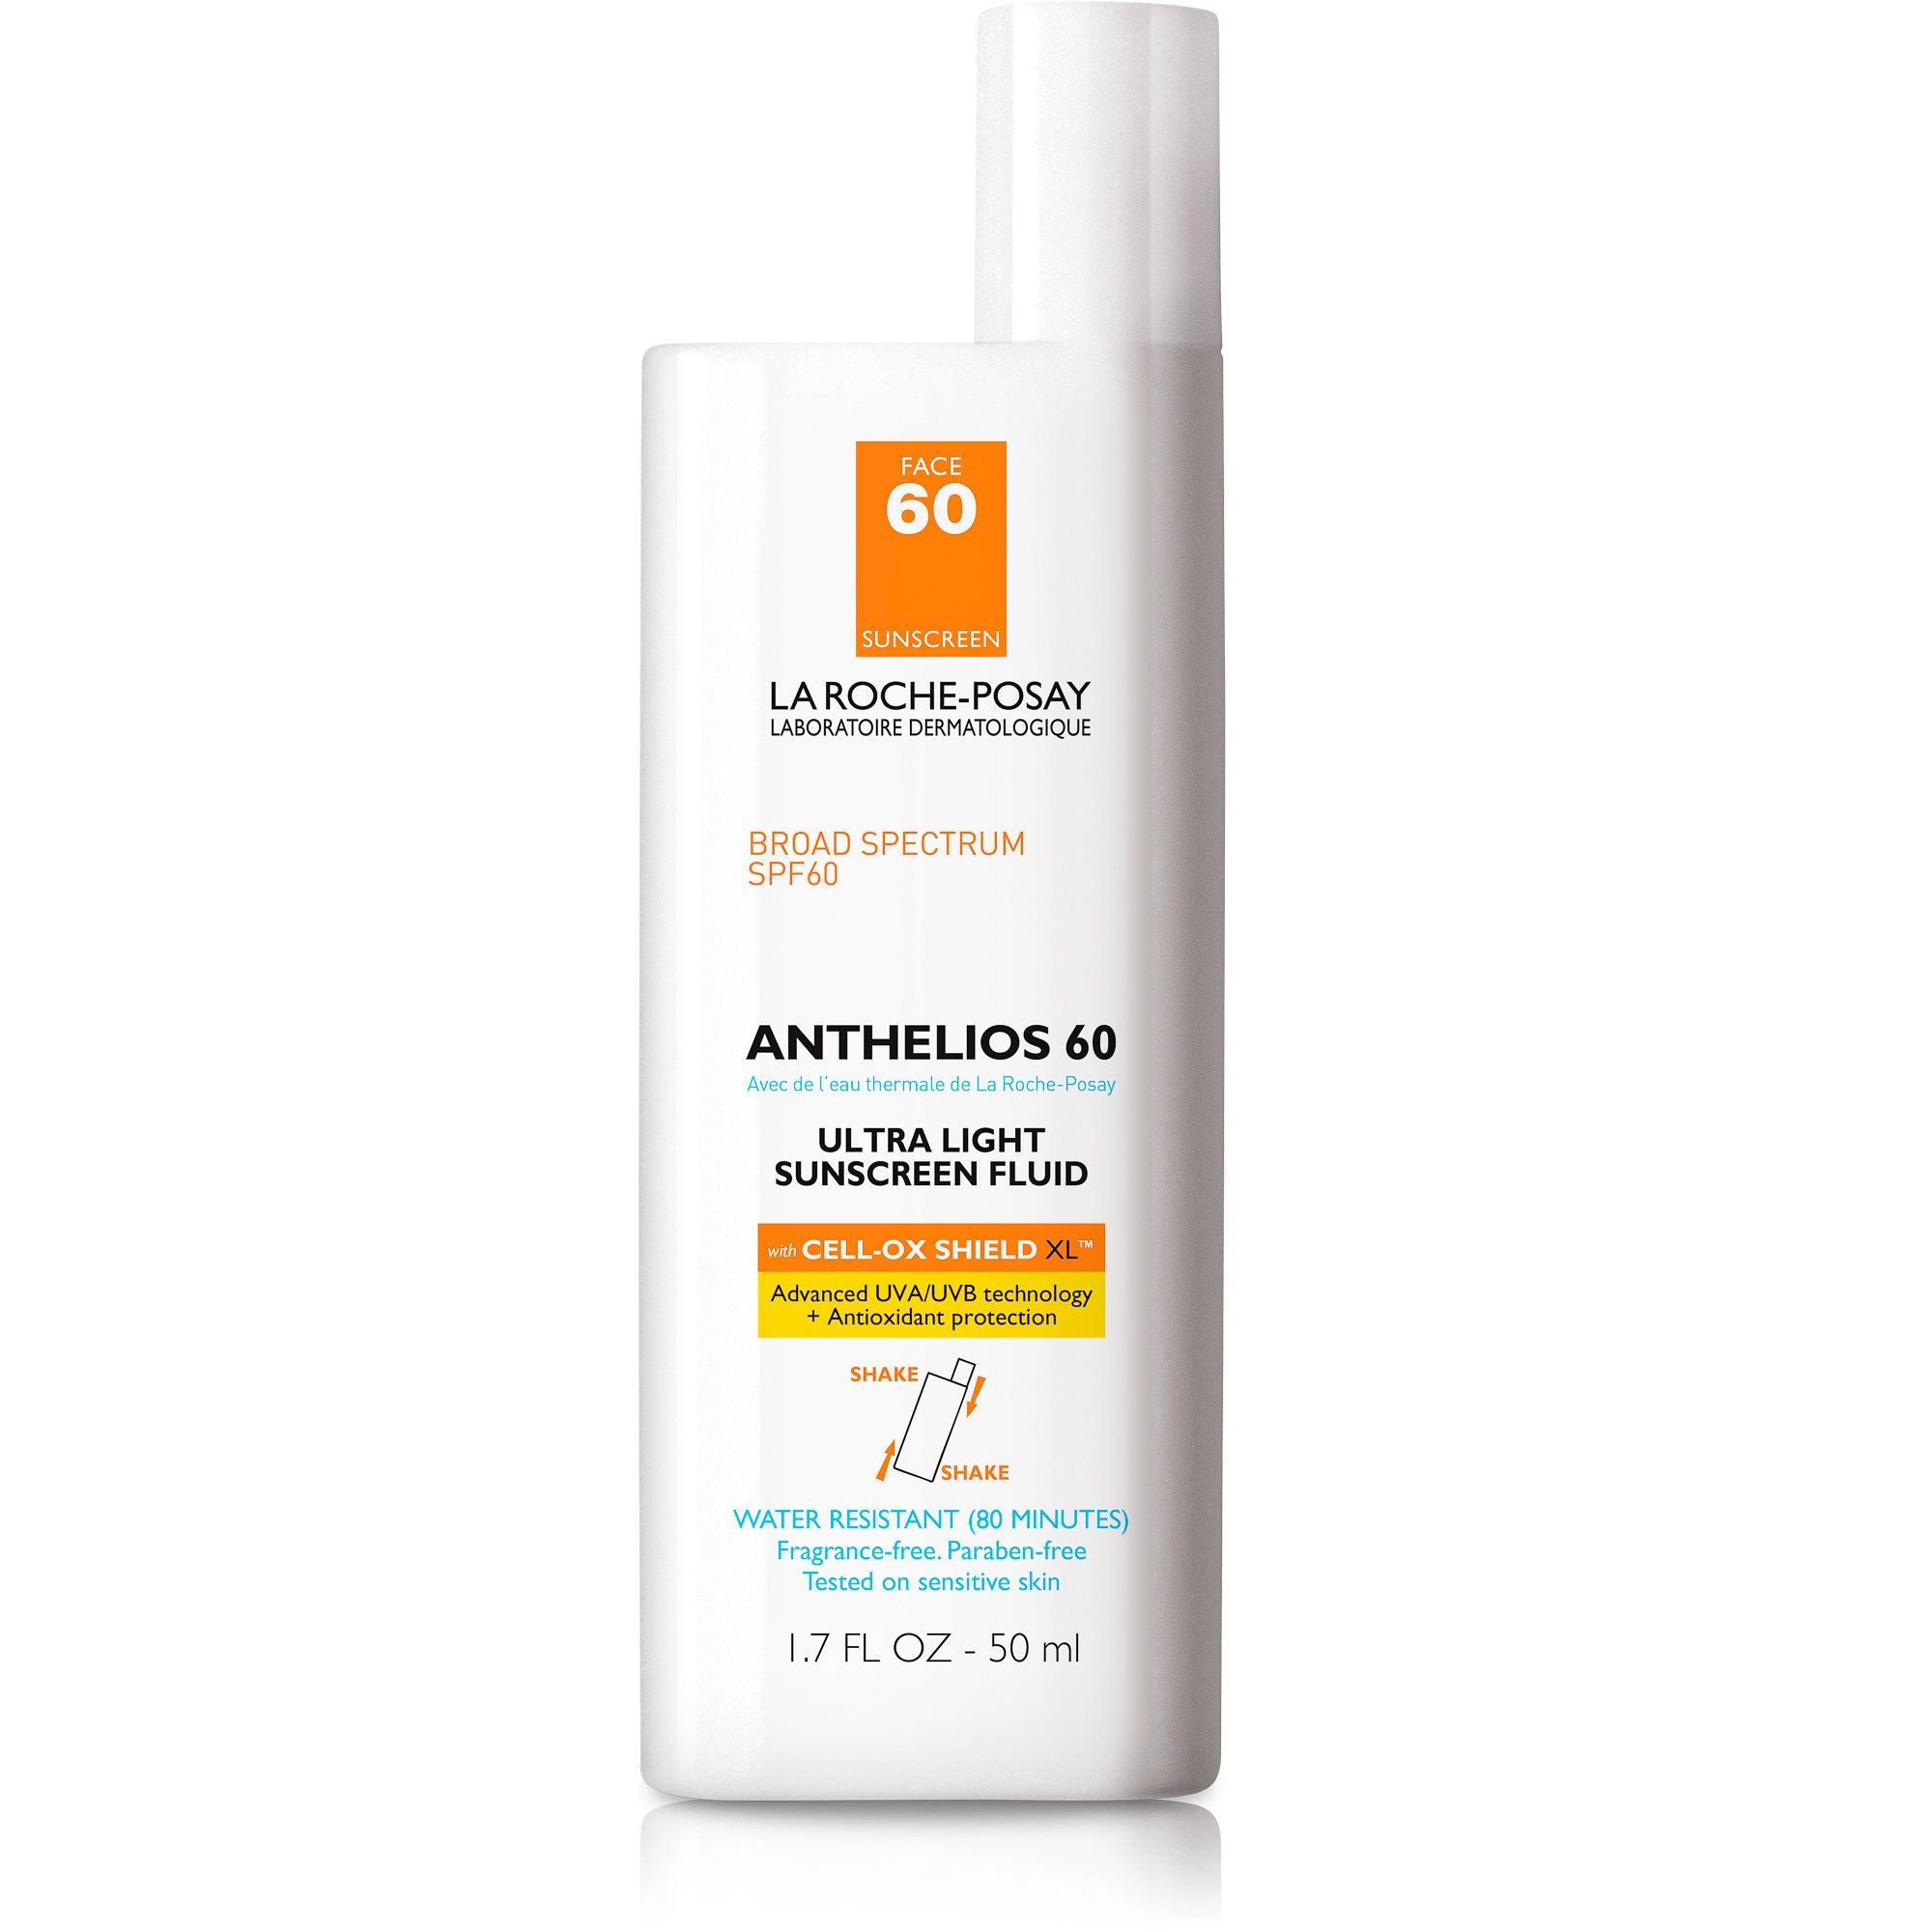 La Roche-posay Anthelios Ultra Light Sunscreen Fluid Extreme, Spf 60-1.7 Oz, 1.75 Oz by La Roche-Posay